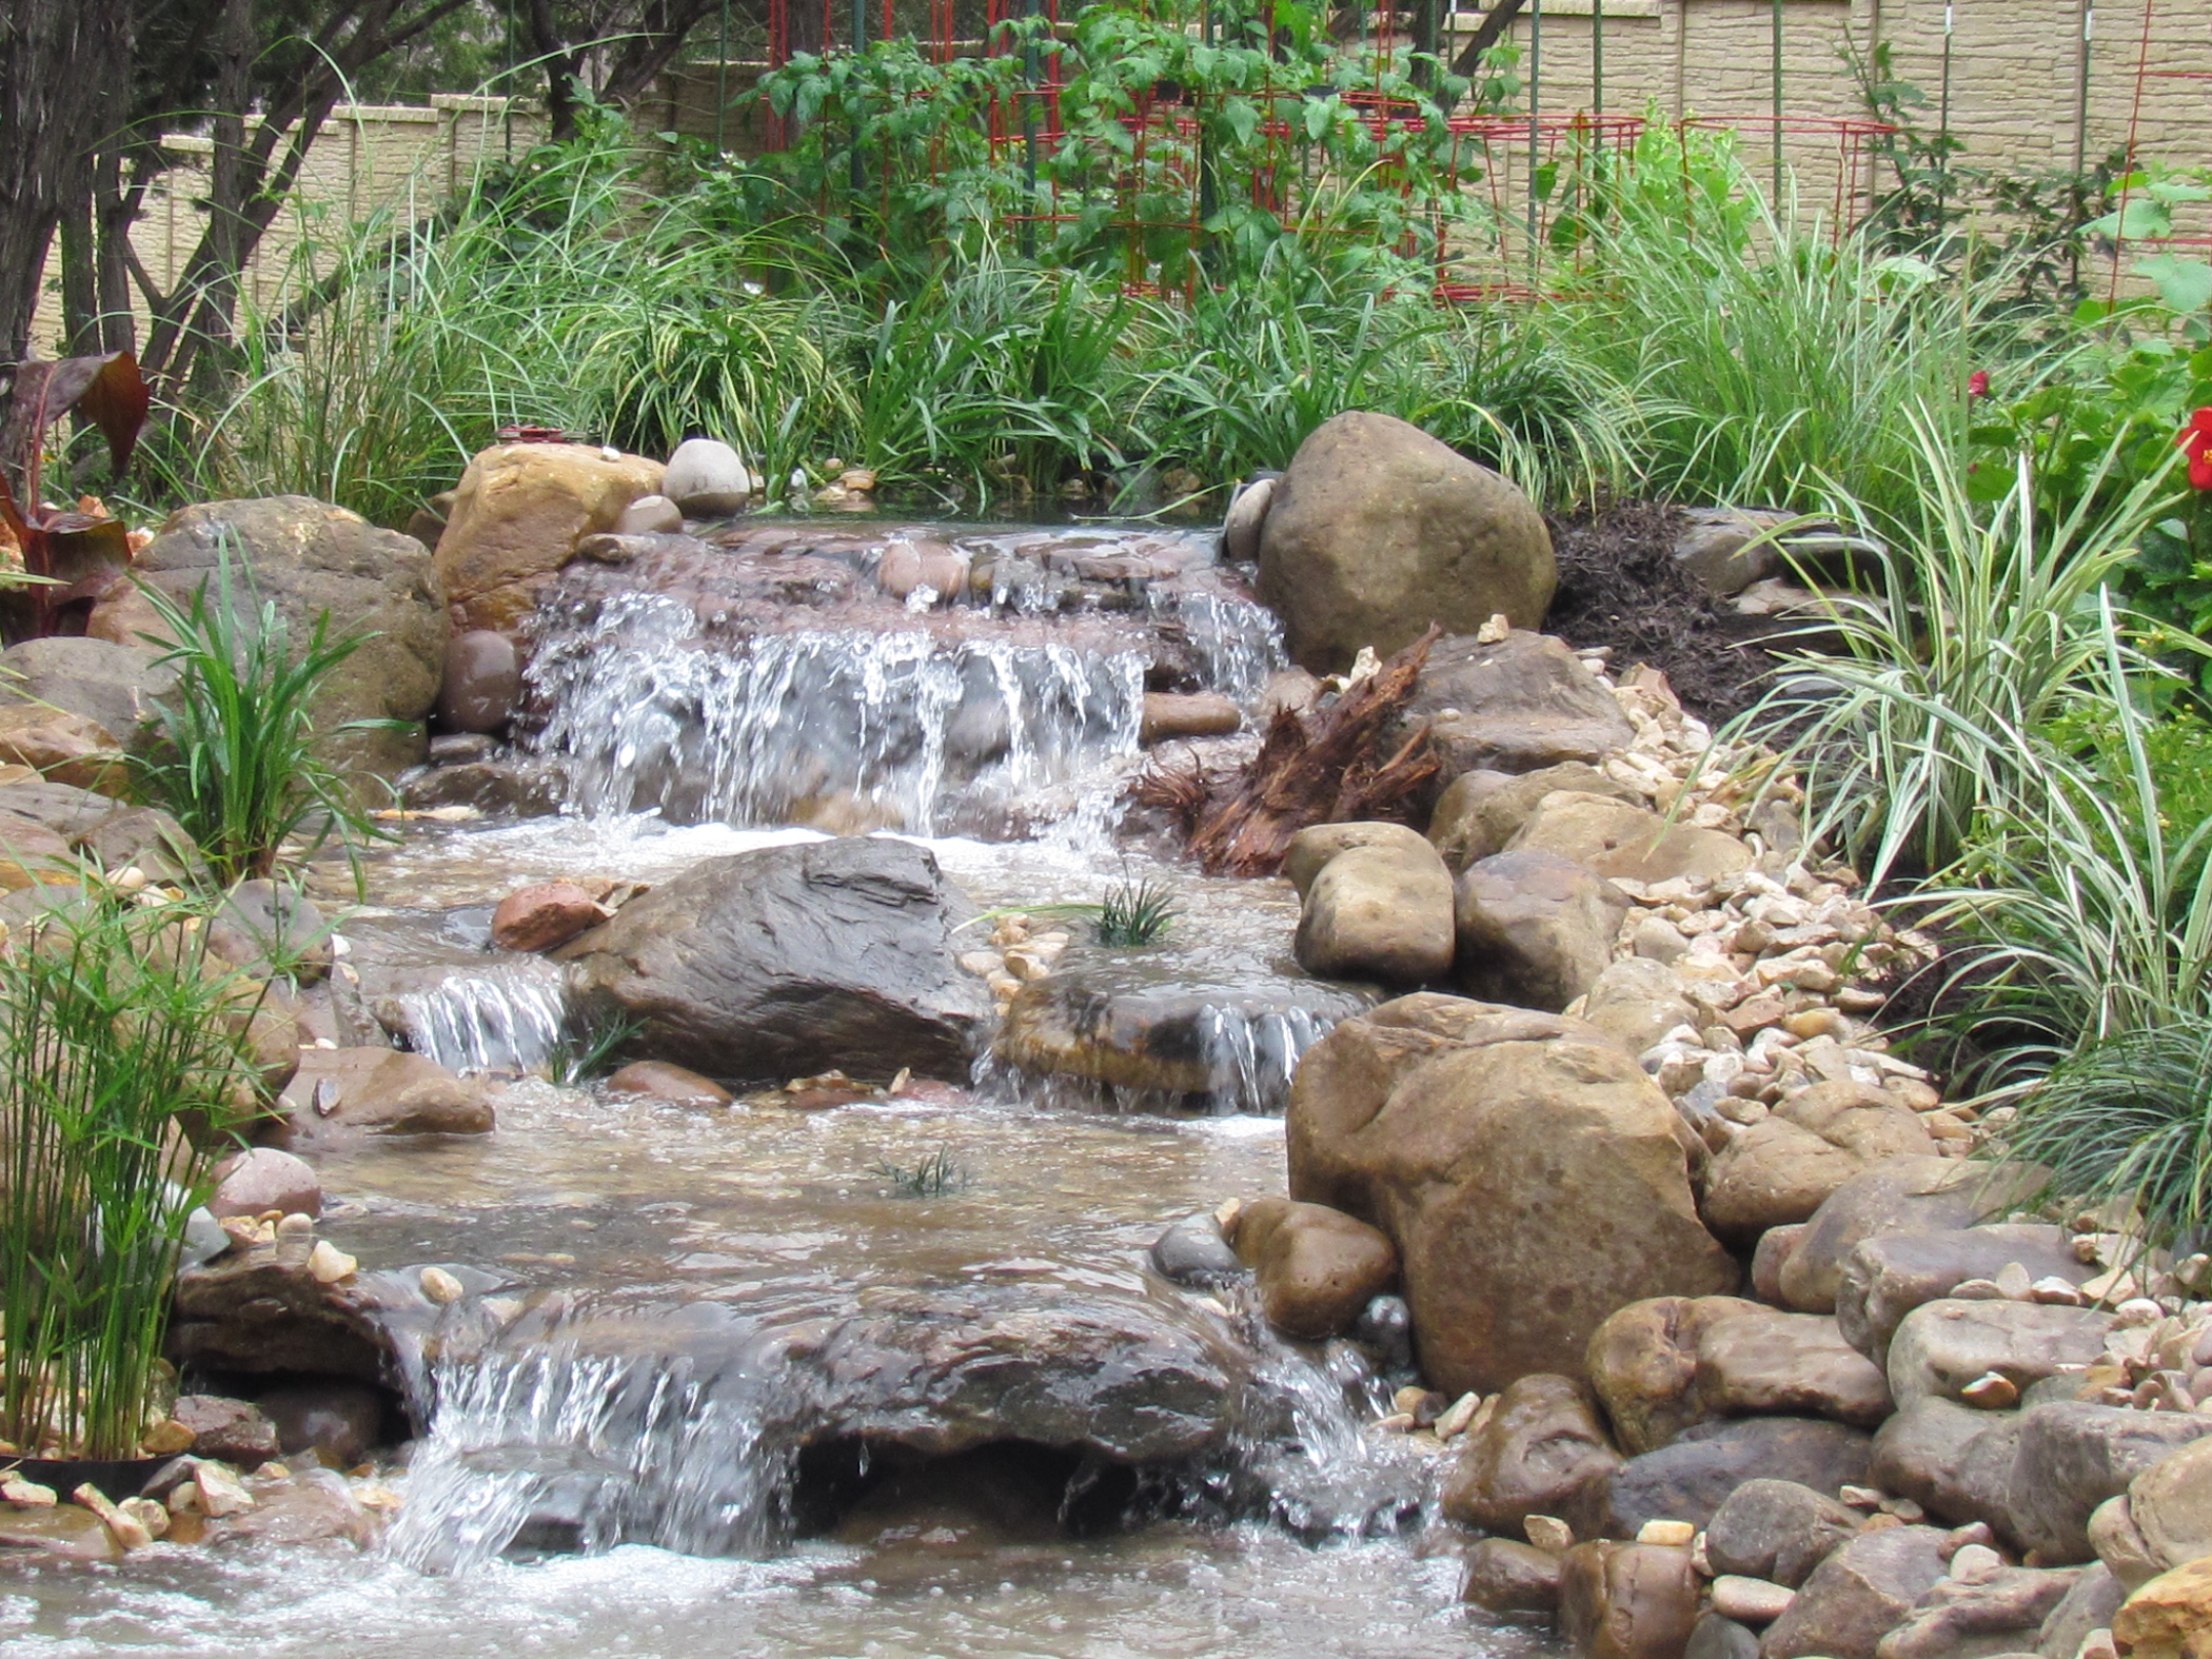 Pondless Amp Pond Pricing The Pond Doctor The Pond Doctor